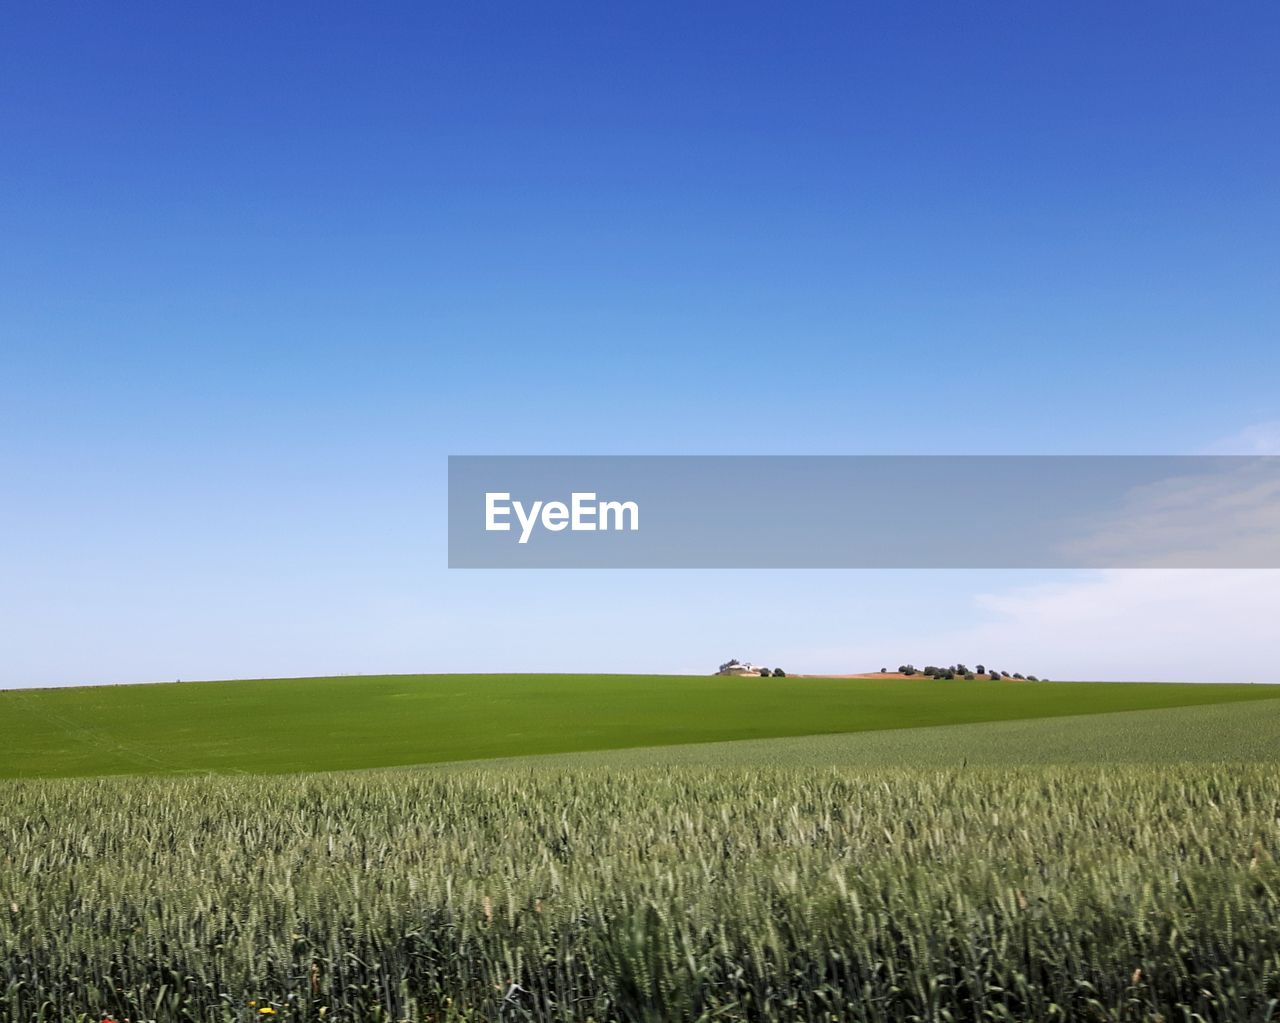 SCENIC VIEW OF WHEAT FIELD AGAINST BLUE SKY